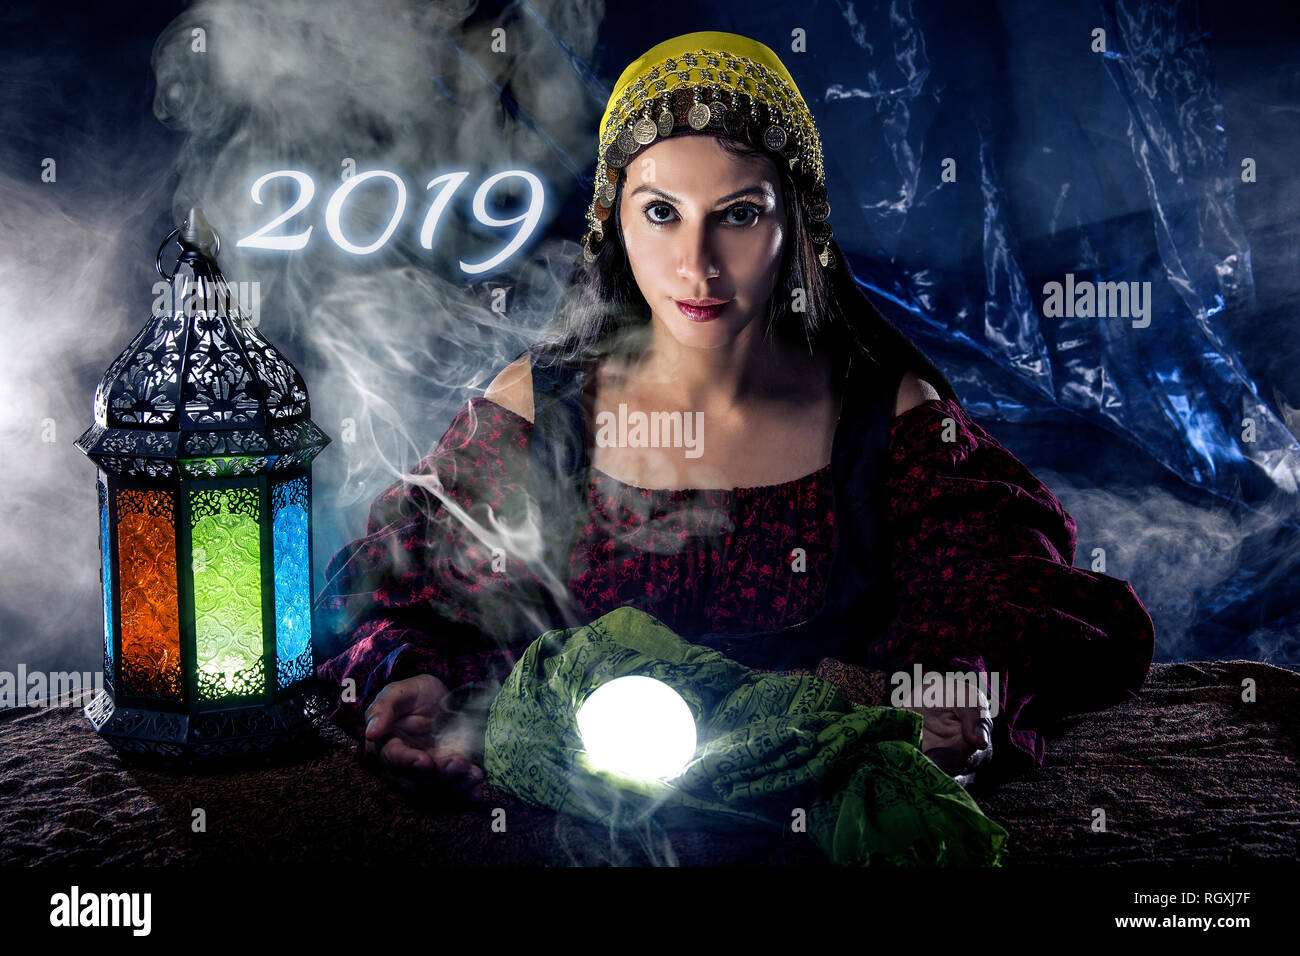 Female fortune teller or psychic reading with a cystal ball predicting the future of the year 2019 - Stock Image